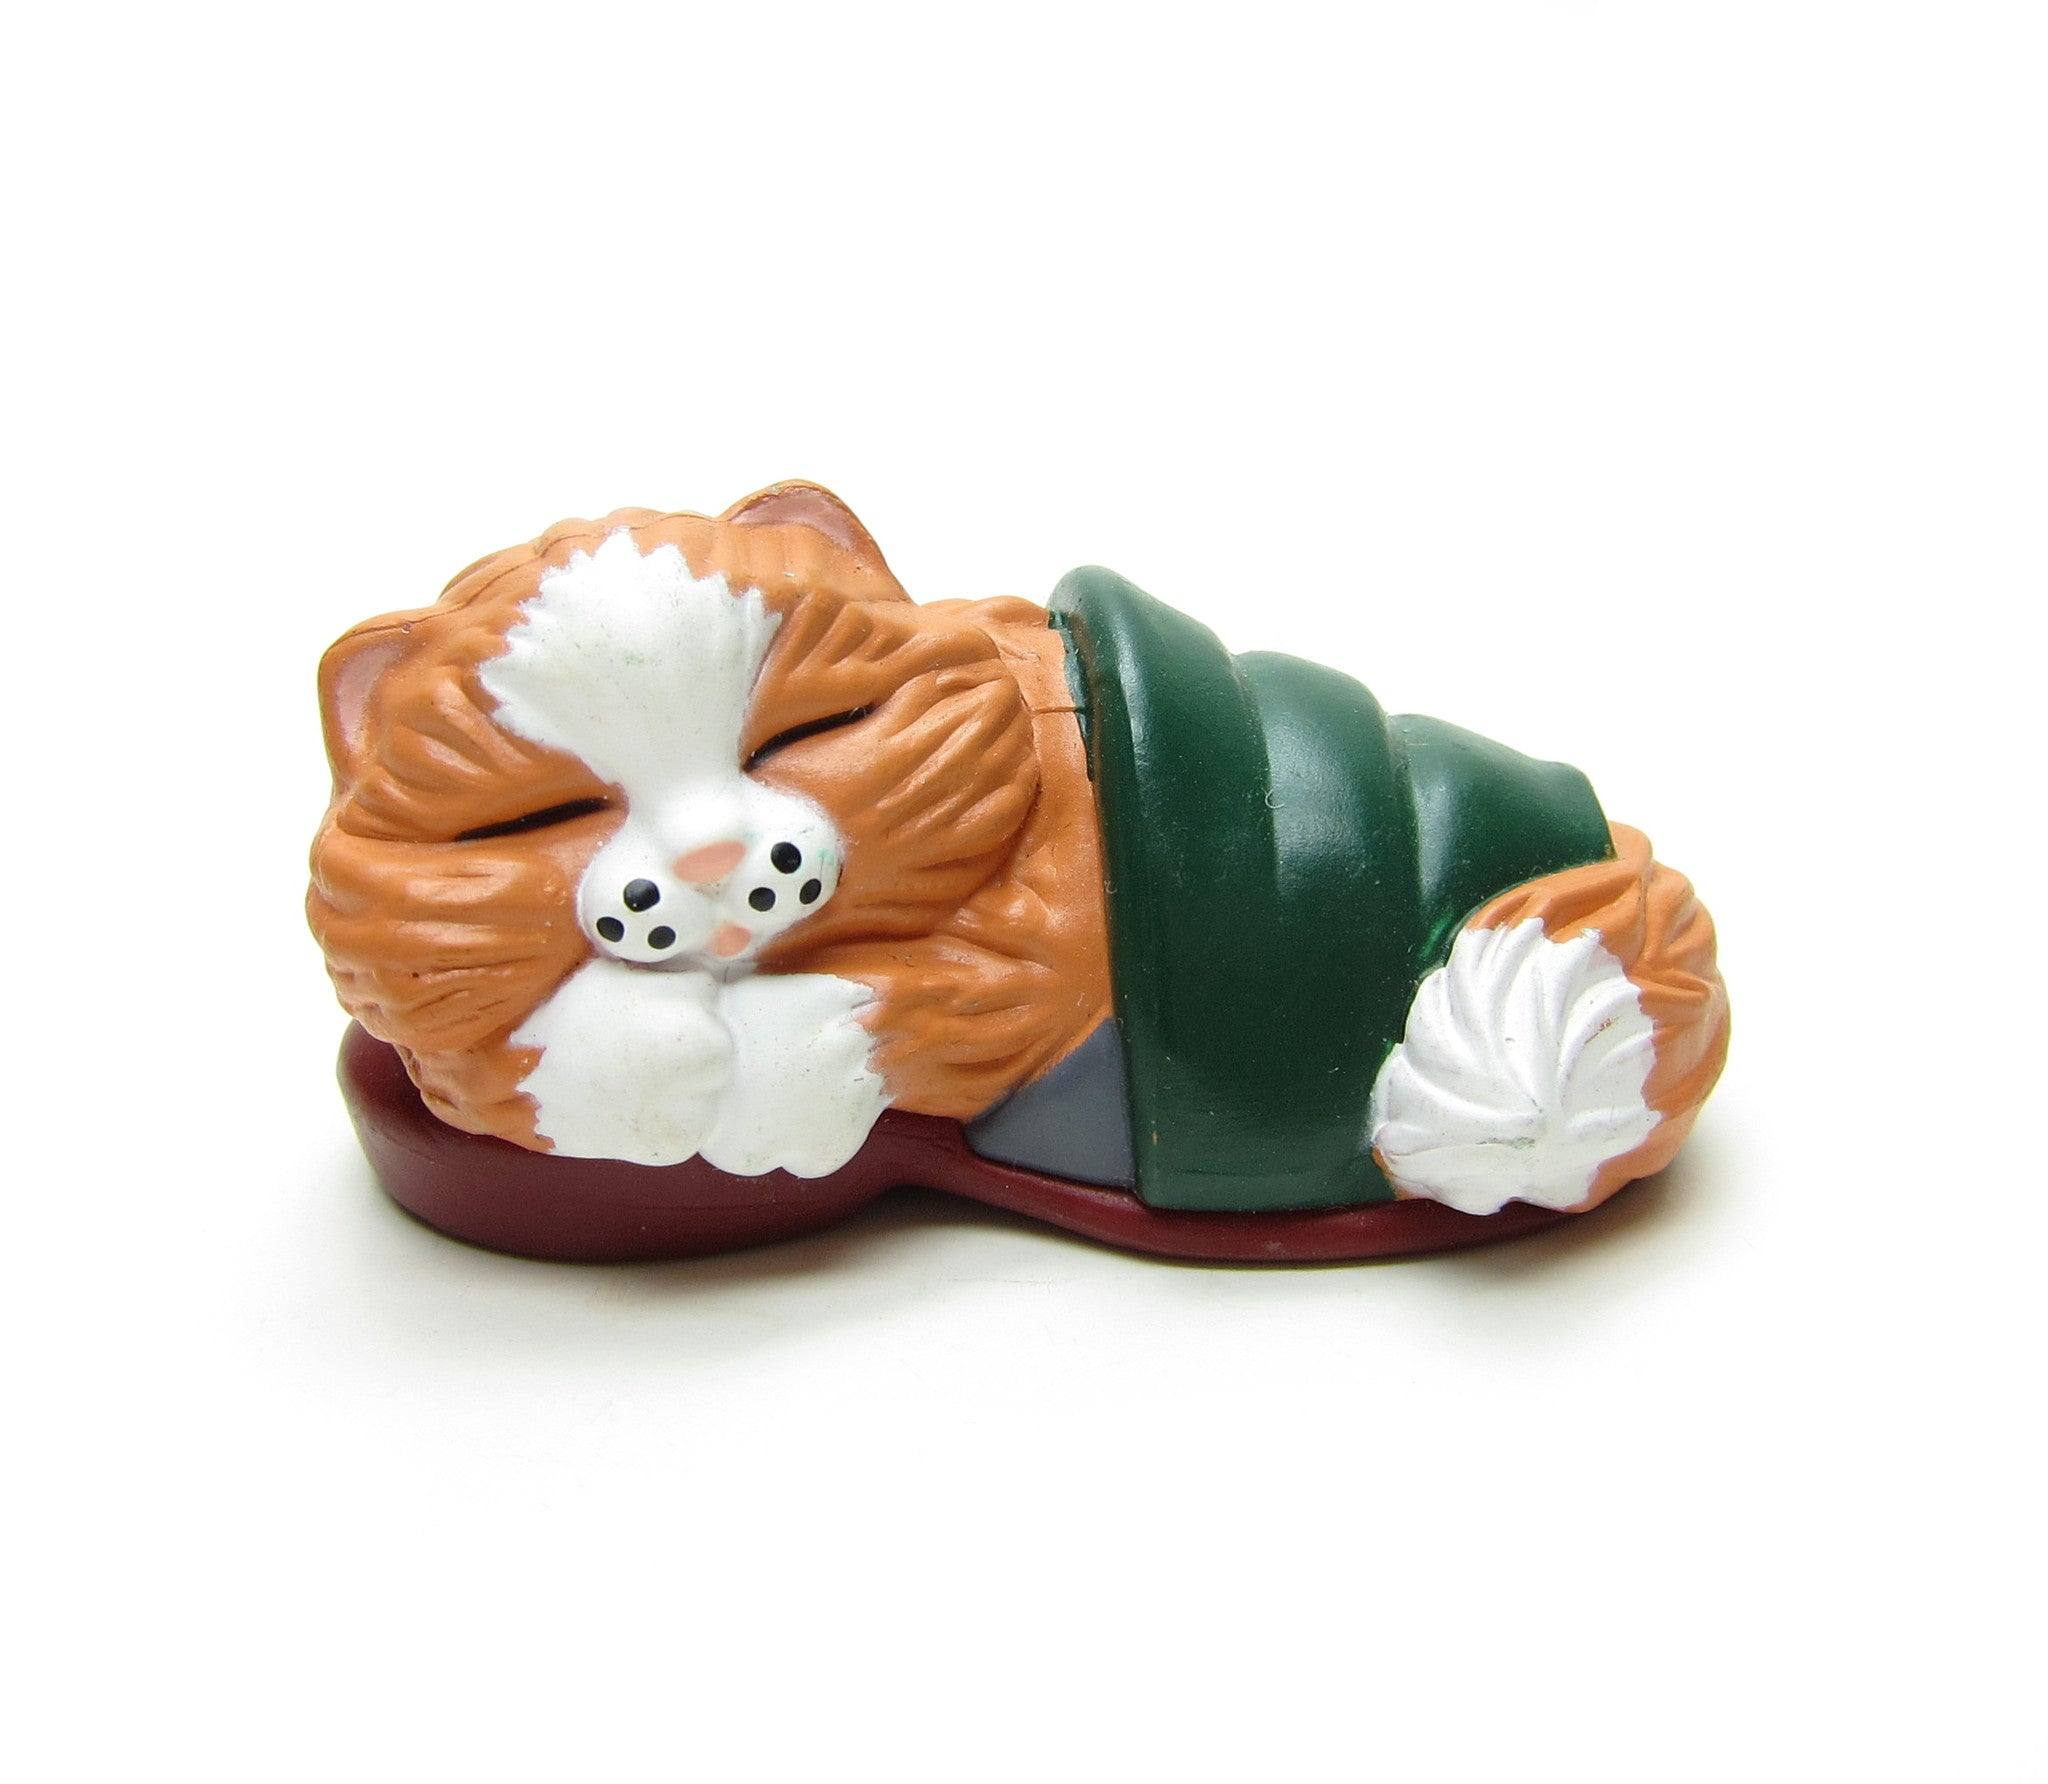 Kitten in Slipper Hallmark Merry Miniatures figurine